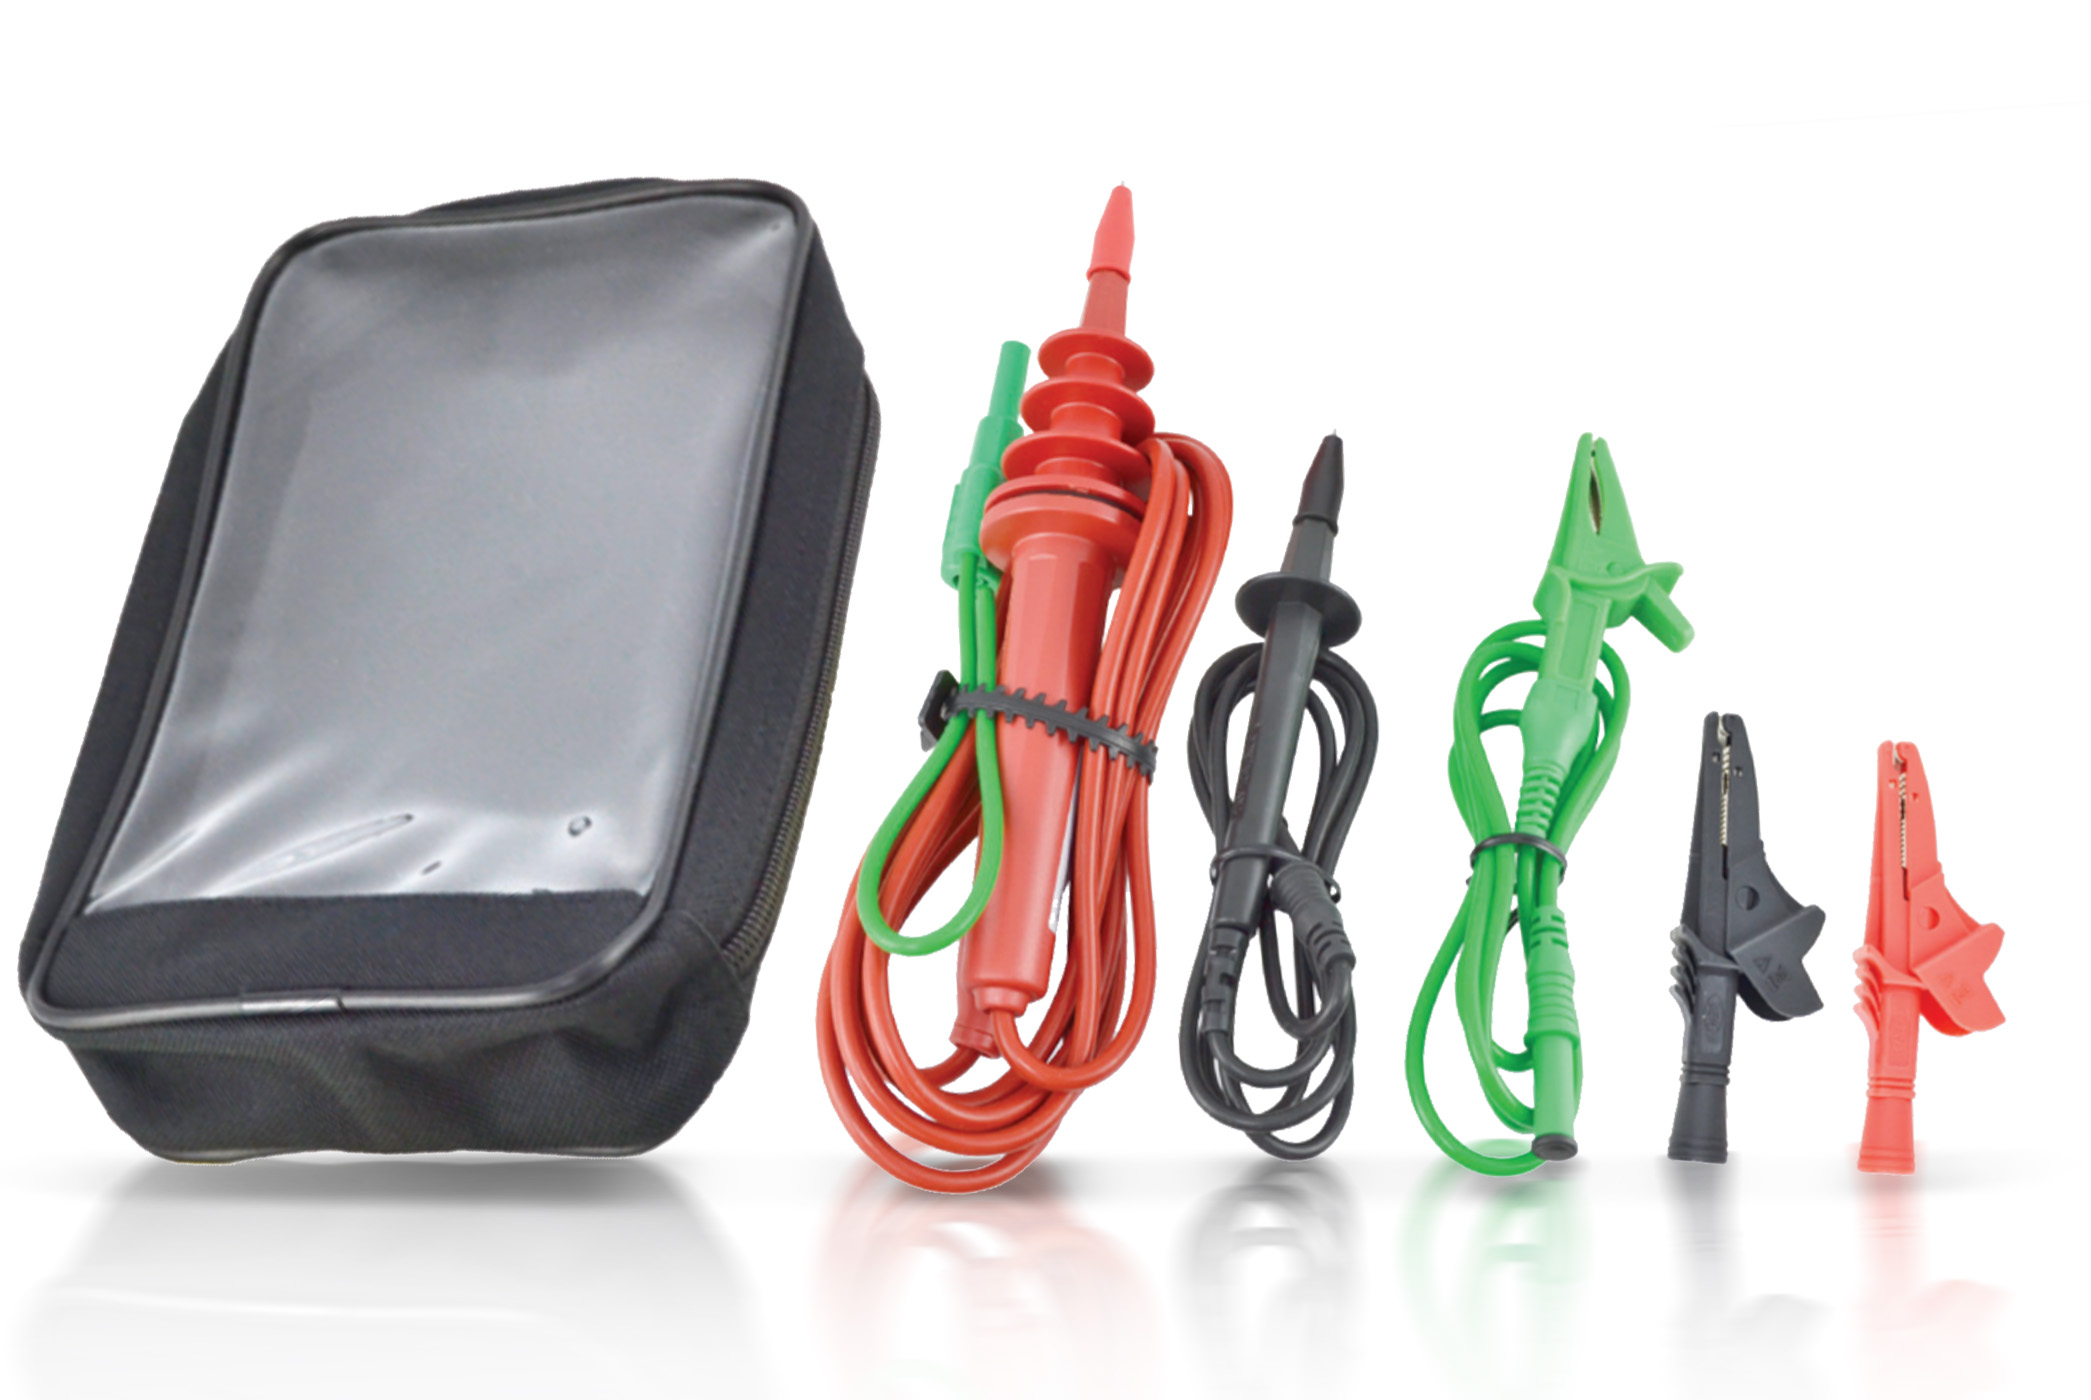 «PeakTech® P 2680/85 KS» Test lead set with HV probe and two leads (black / green) for P 2680/2685